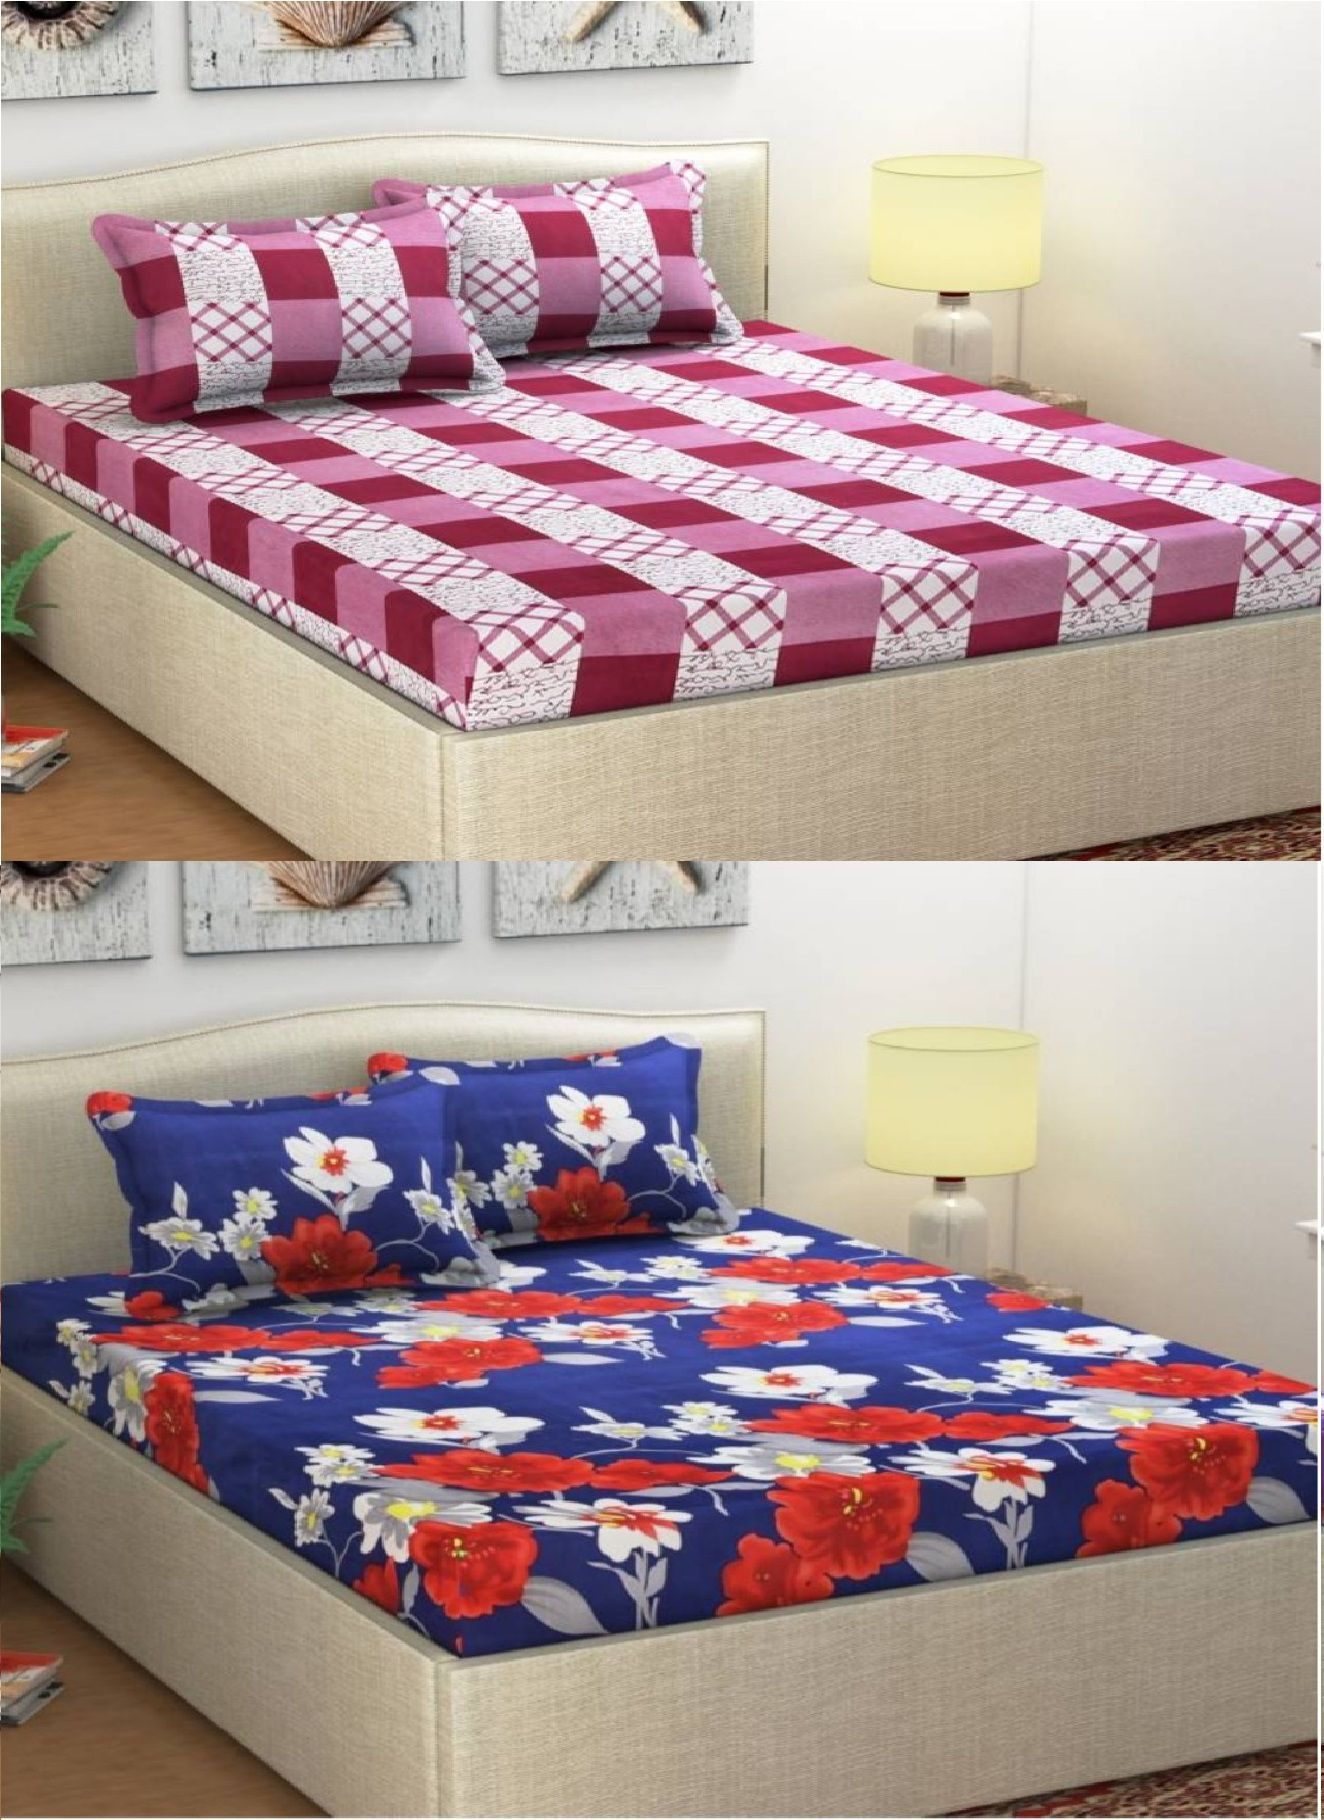 OMKARESHWAR INTERNATIONAL Microfibre 2 Double Bedsheets with 4 Pillow Covers